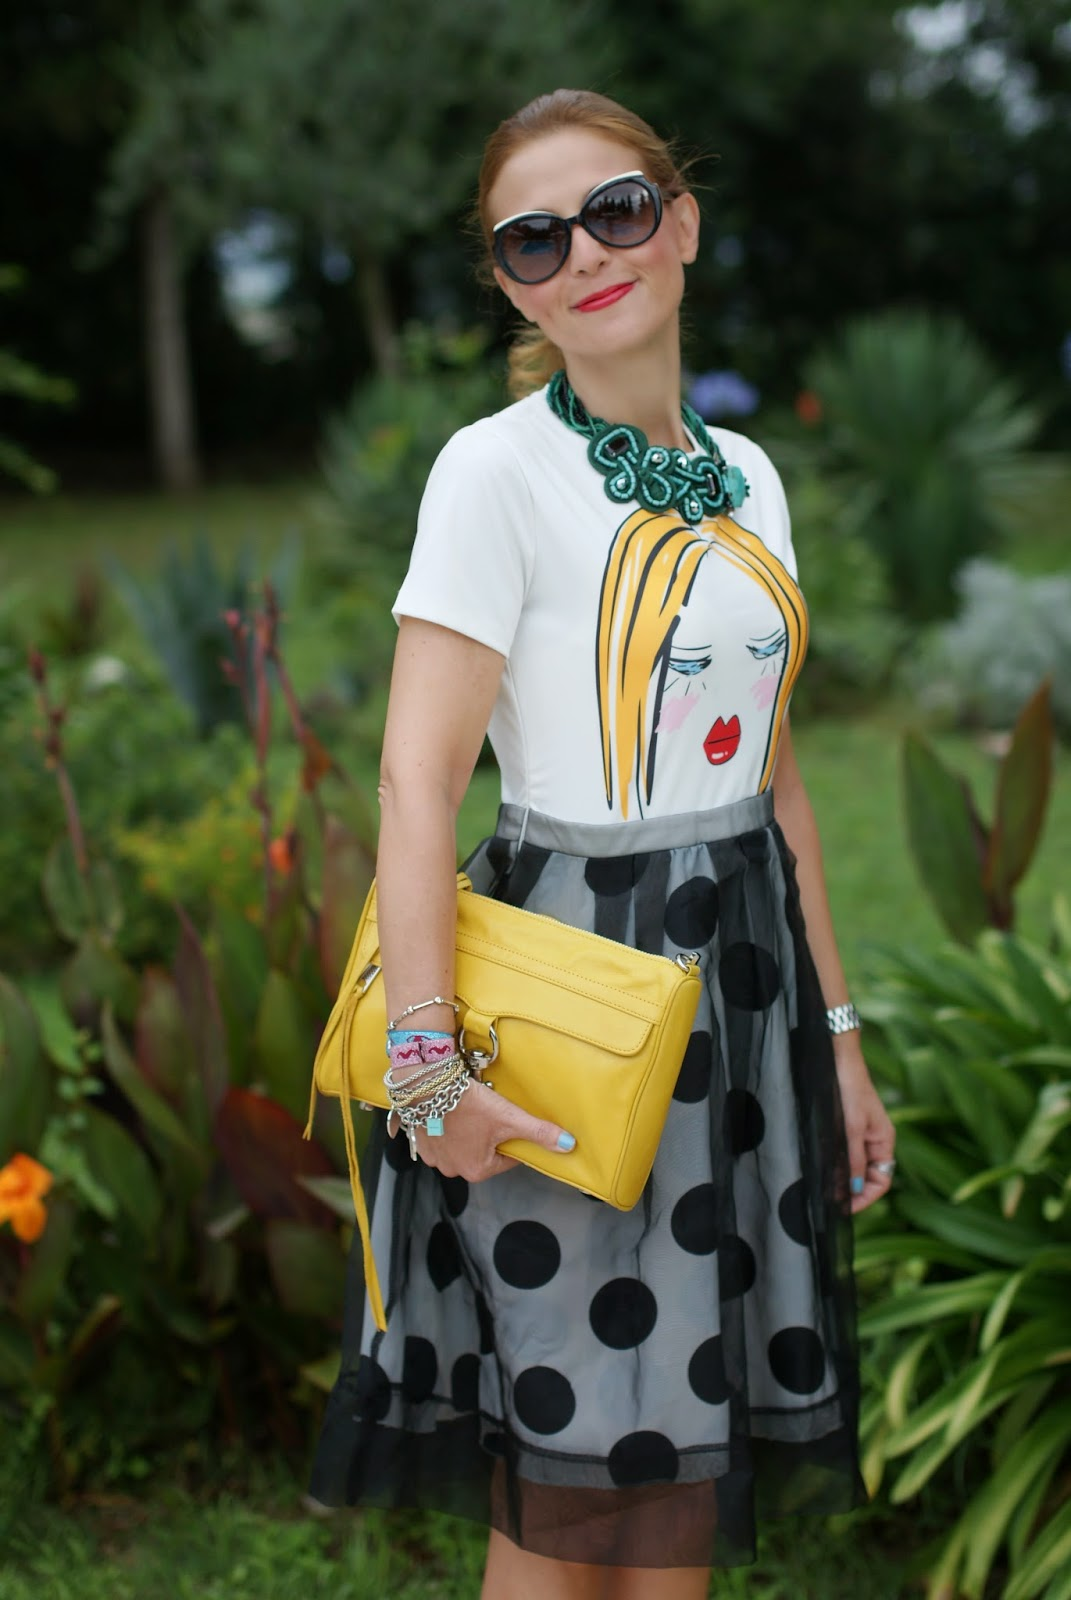 Blackfive lady head dress, Marc by Marc jacobs sunglasses, Rebecca Minkoff yellow bag, Sodini necklace, Fashion and Cookies, fashion blogger